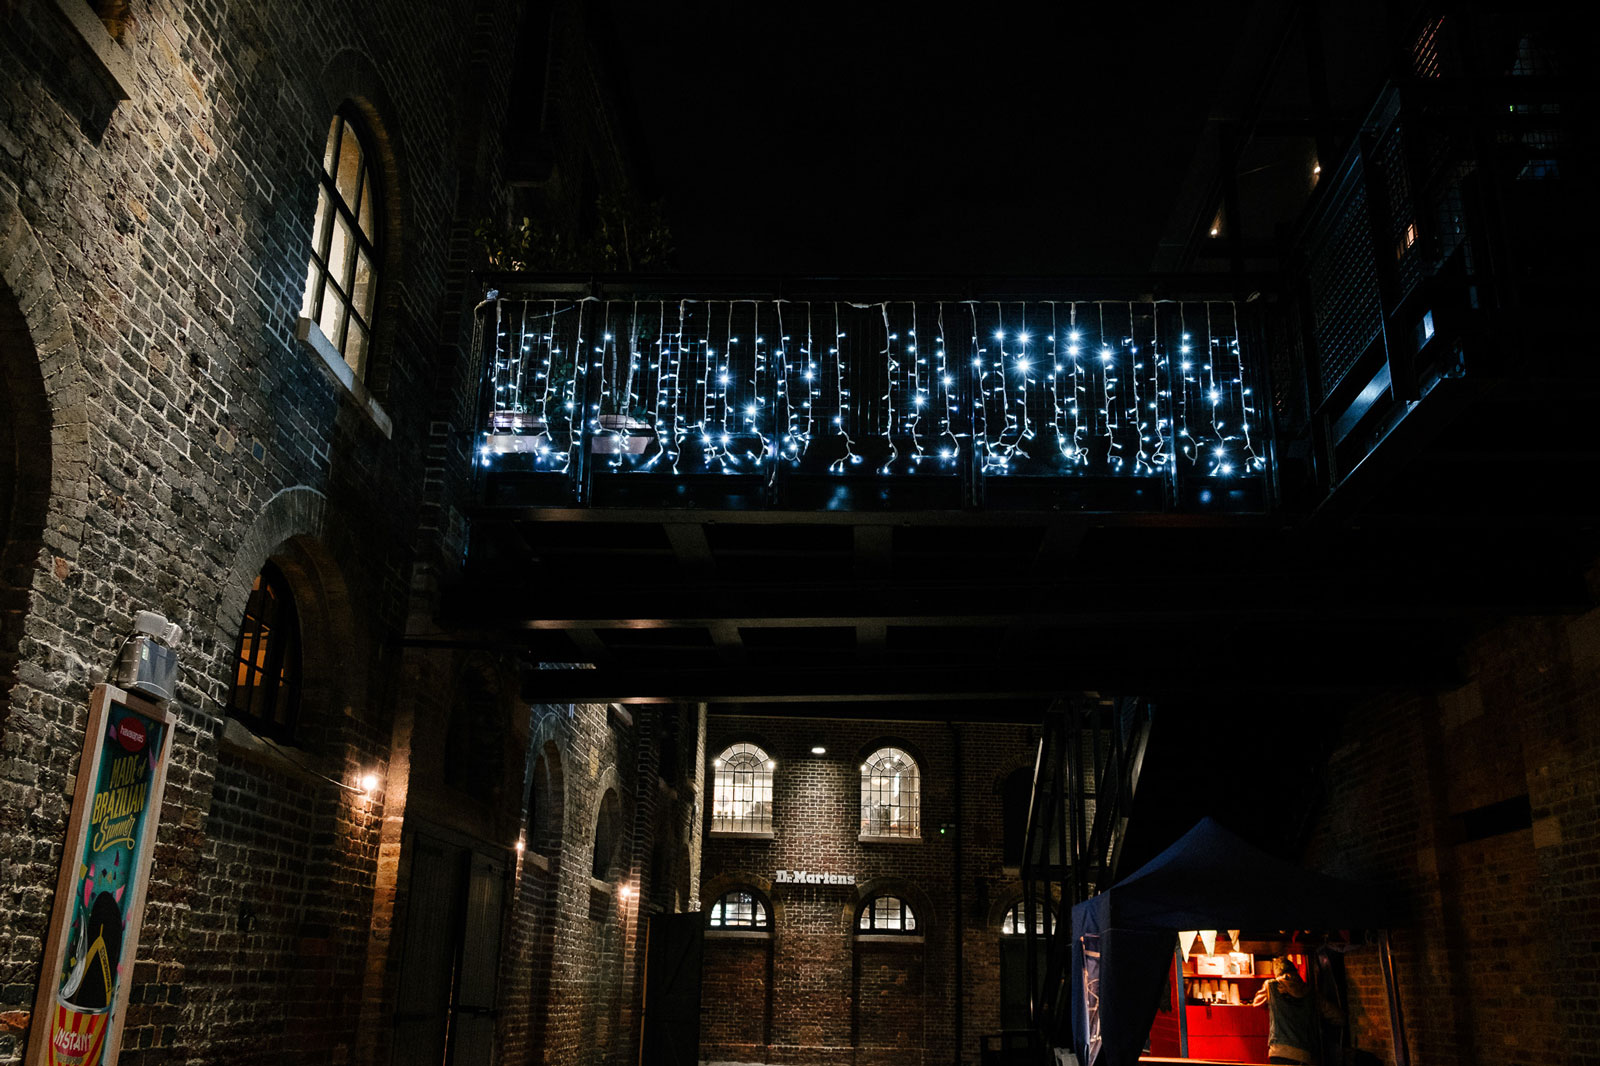 camden market hanging lights